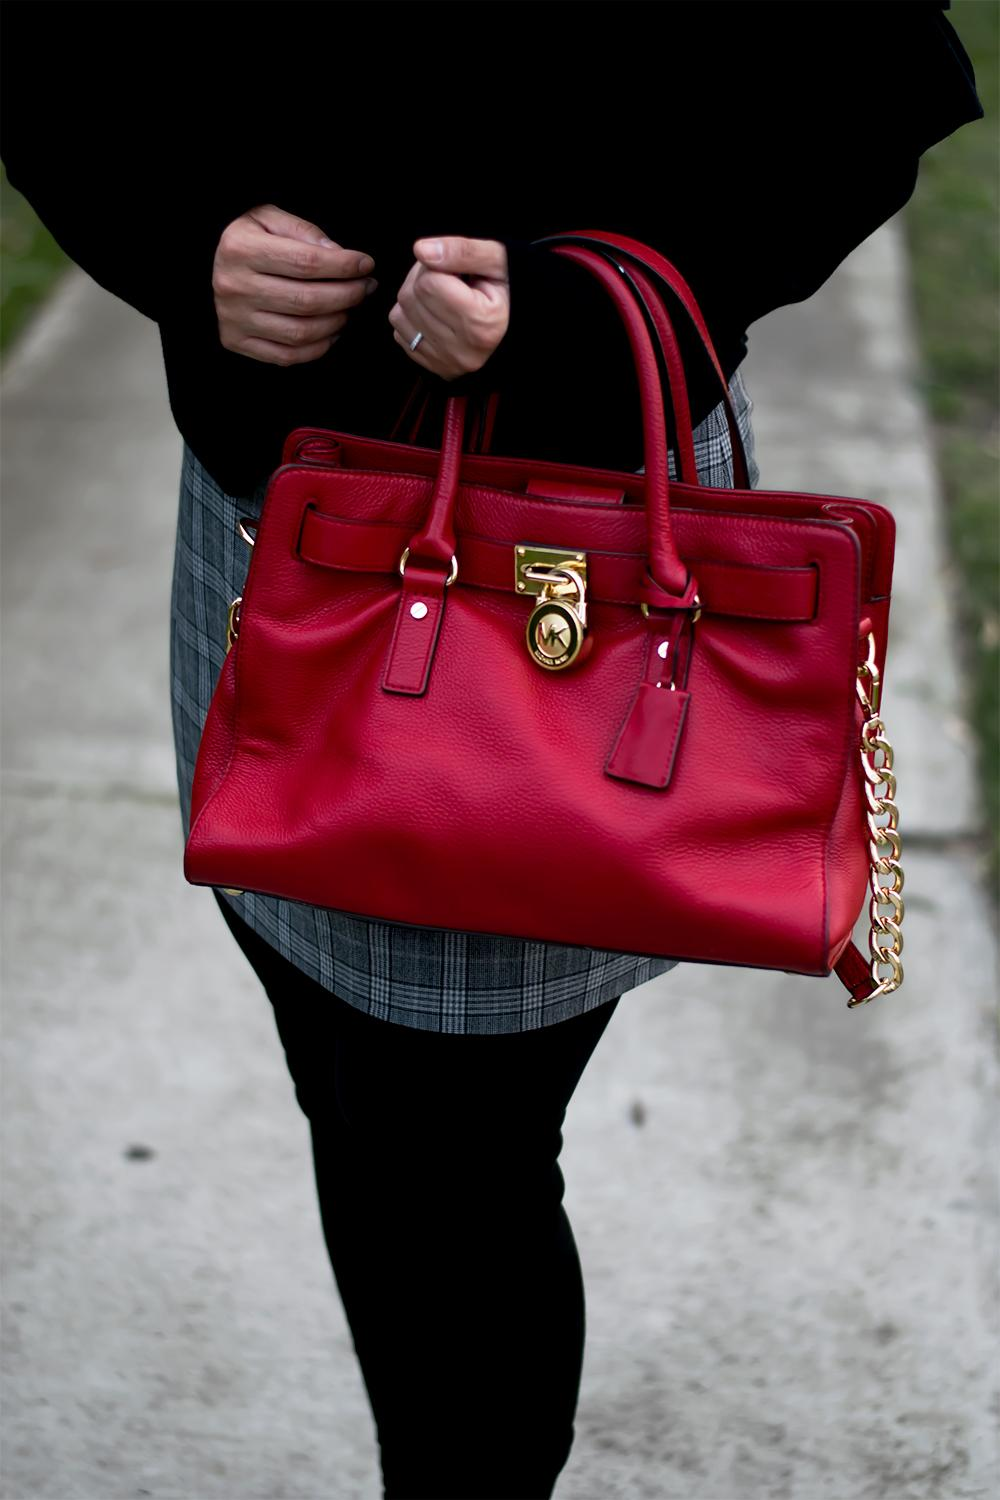 Michael-Kors-Red-Bag-Purse-Top-Blogger-Outfits-for-2017-Barefoot-in-LA-Fashion-Blog-Style-Ideas-0886